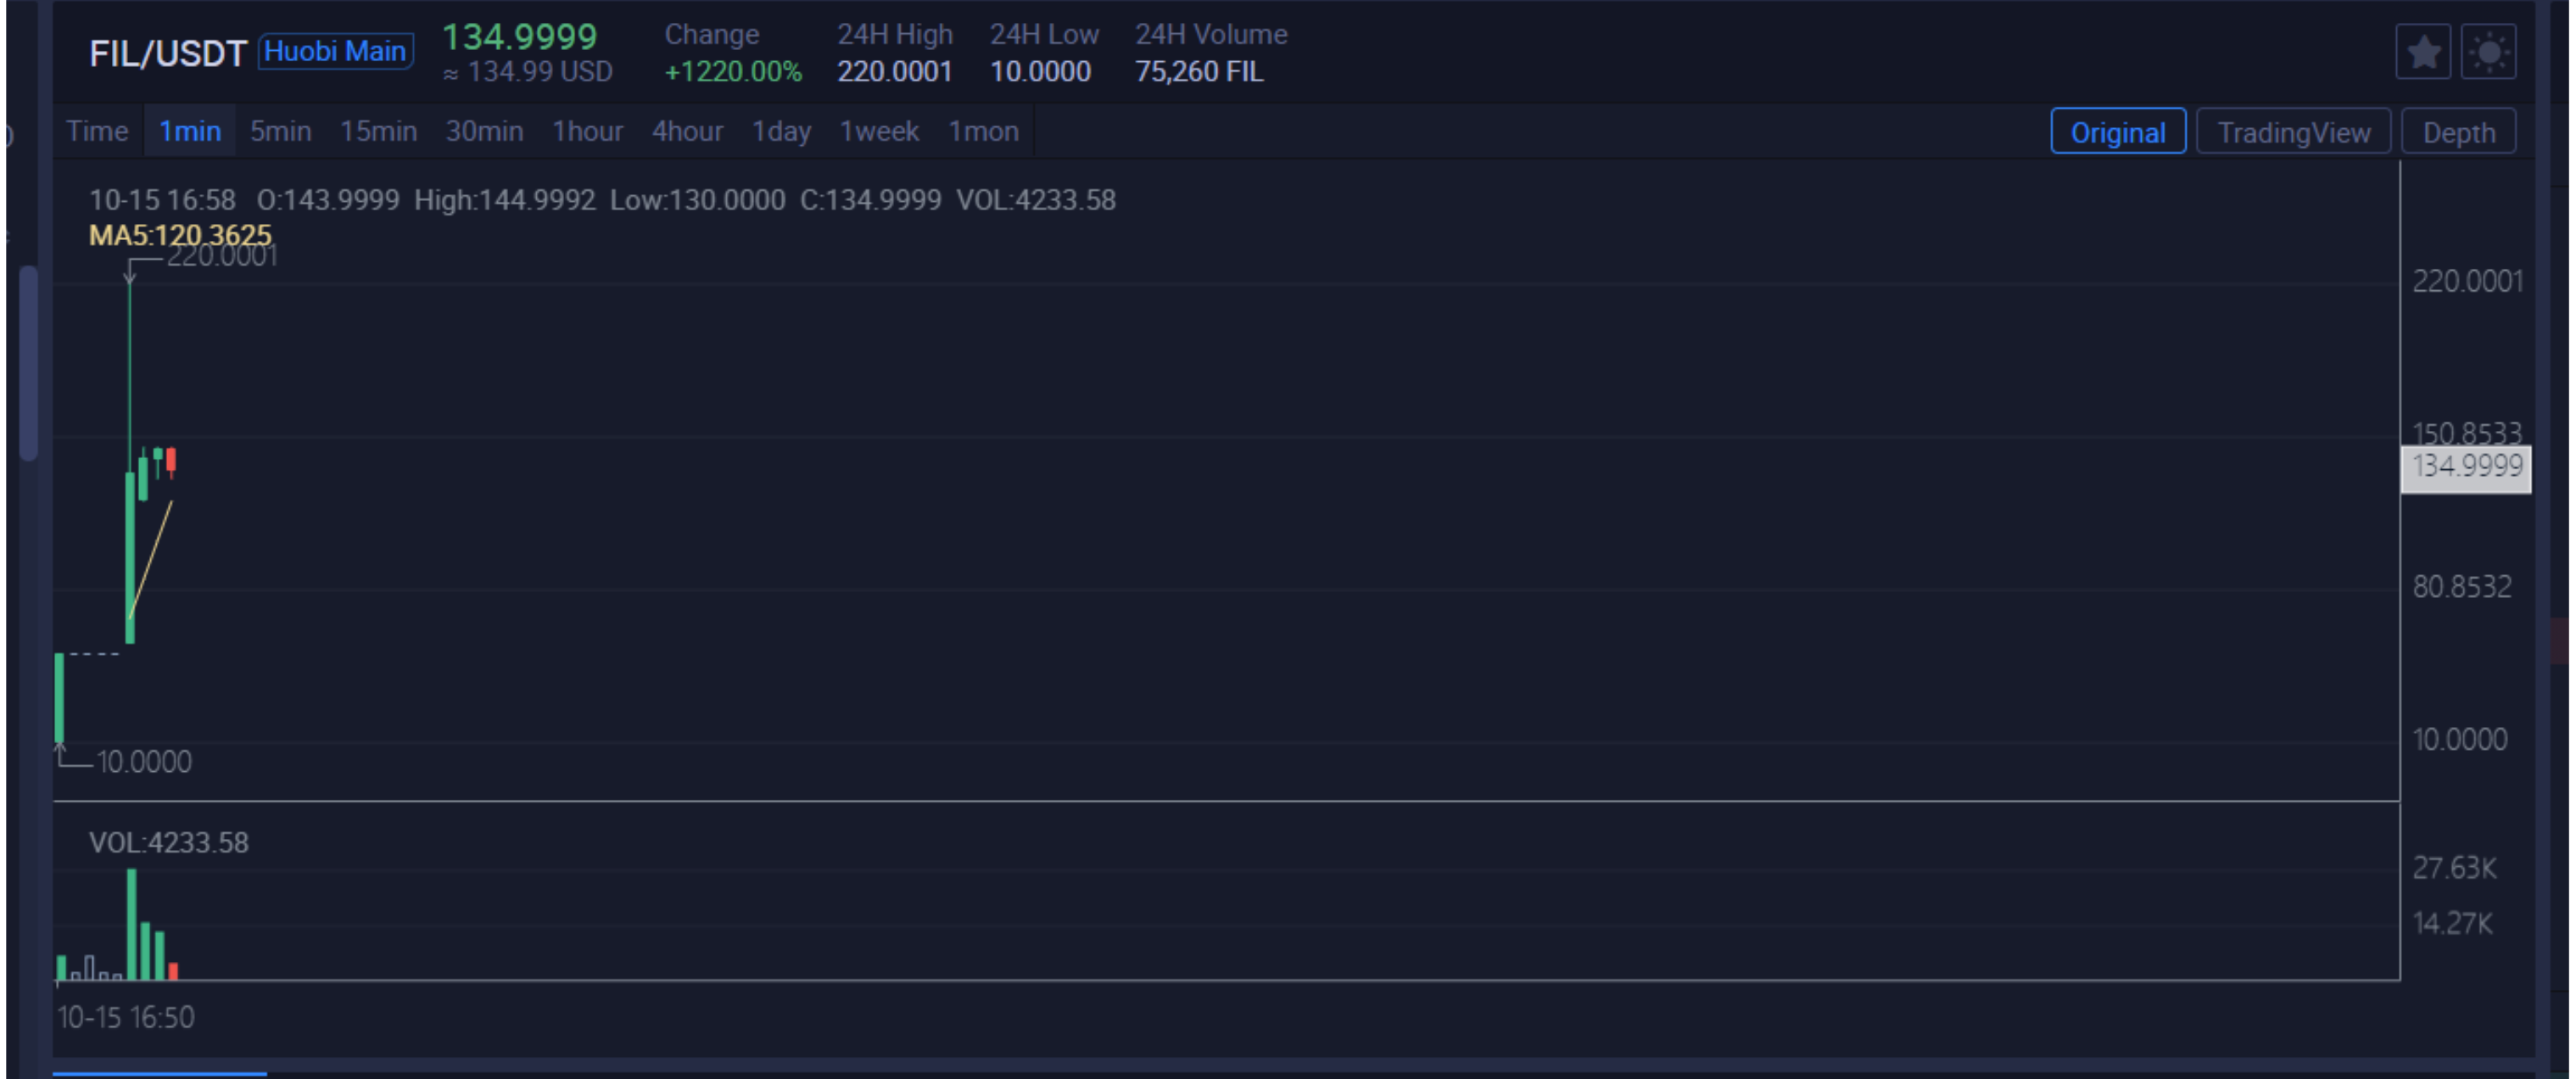 Filecoin's first moments on Huobi